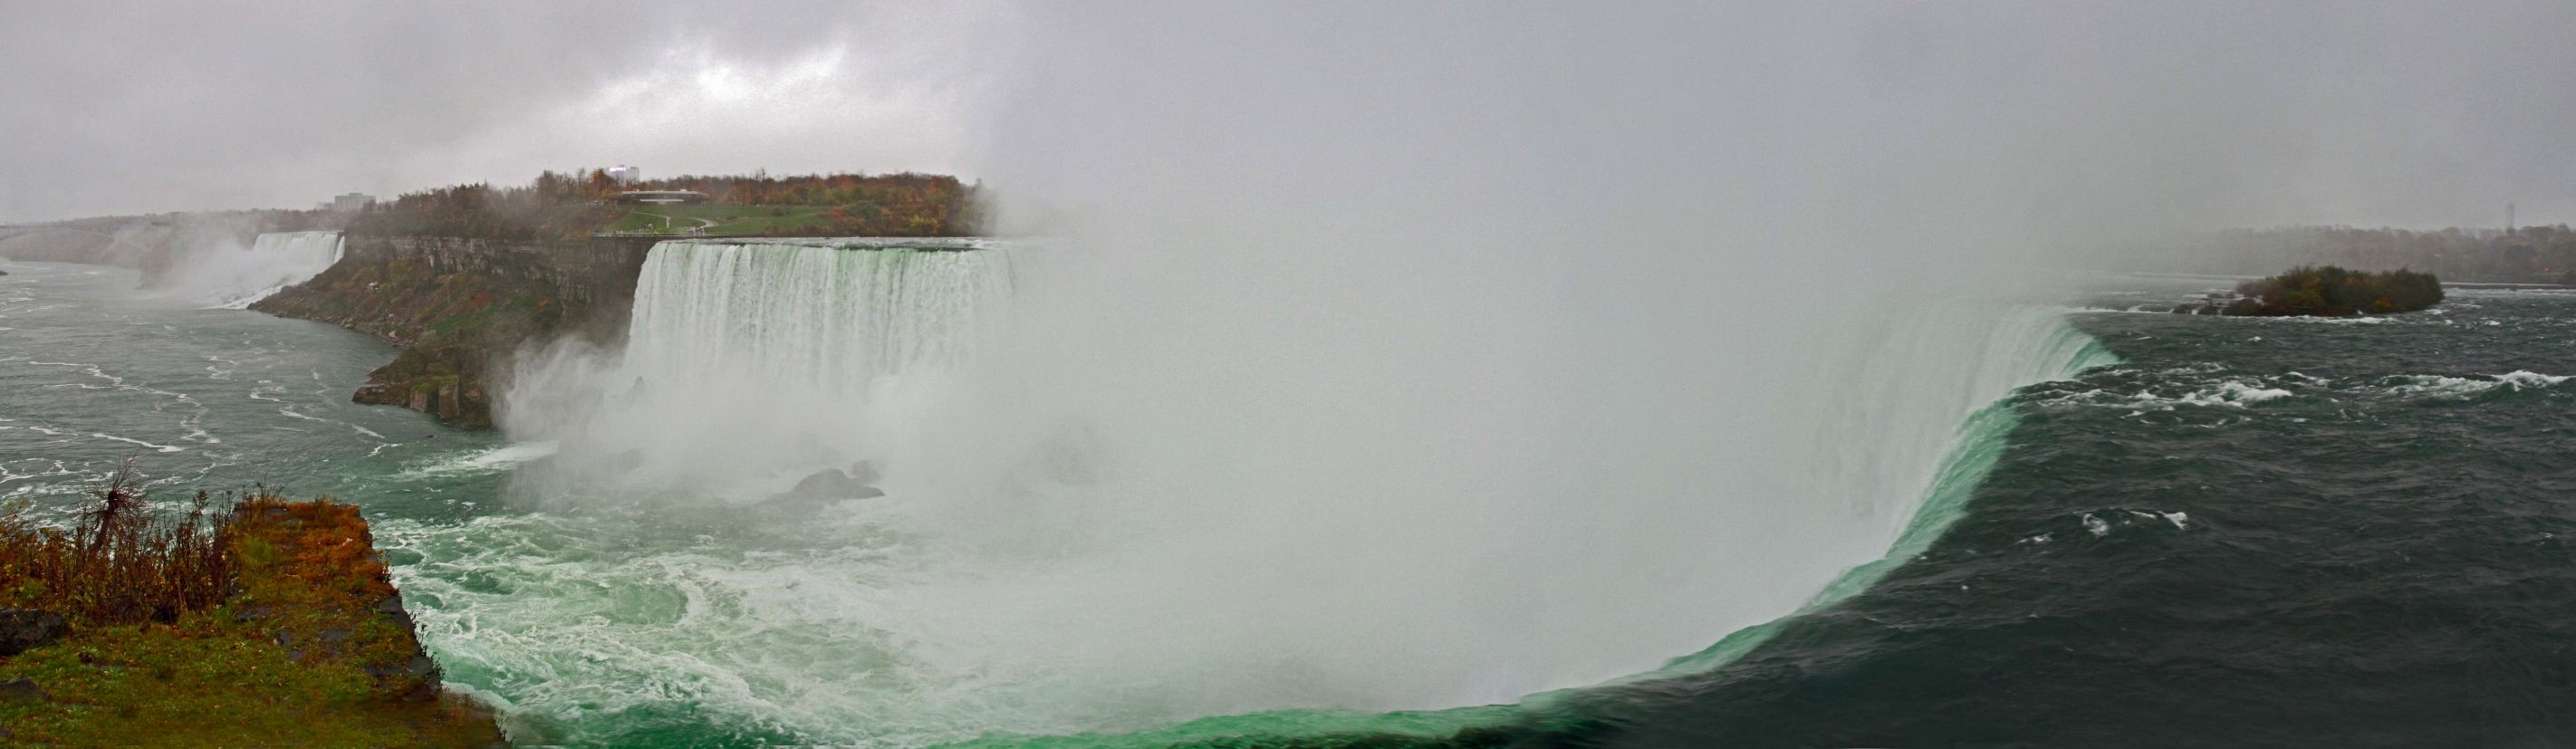 One of the stops at my just finished road trip across North America included Niagara Falls, which looks best at the Canadian side. This panorama is from the Horse Shoe fall where the water flows over the fall like molten glass. Fabulous!